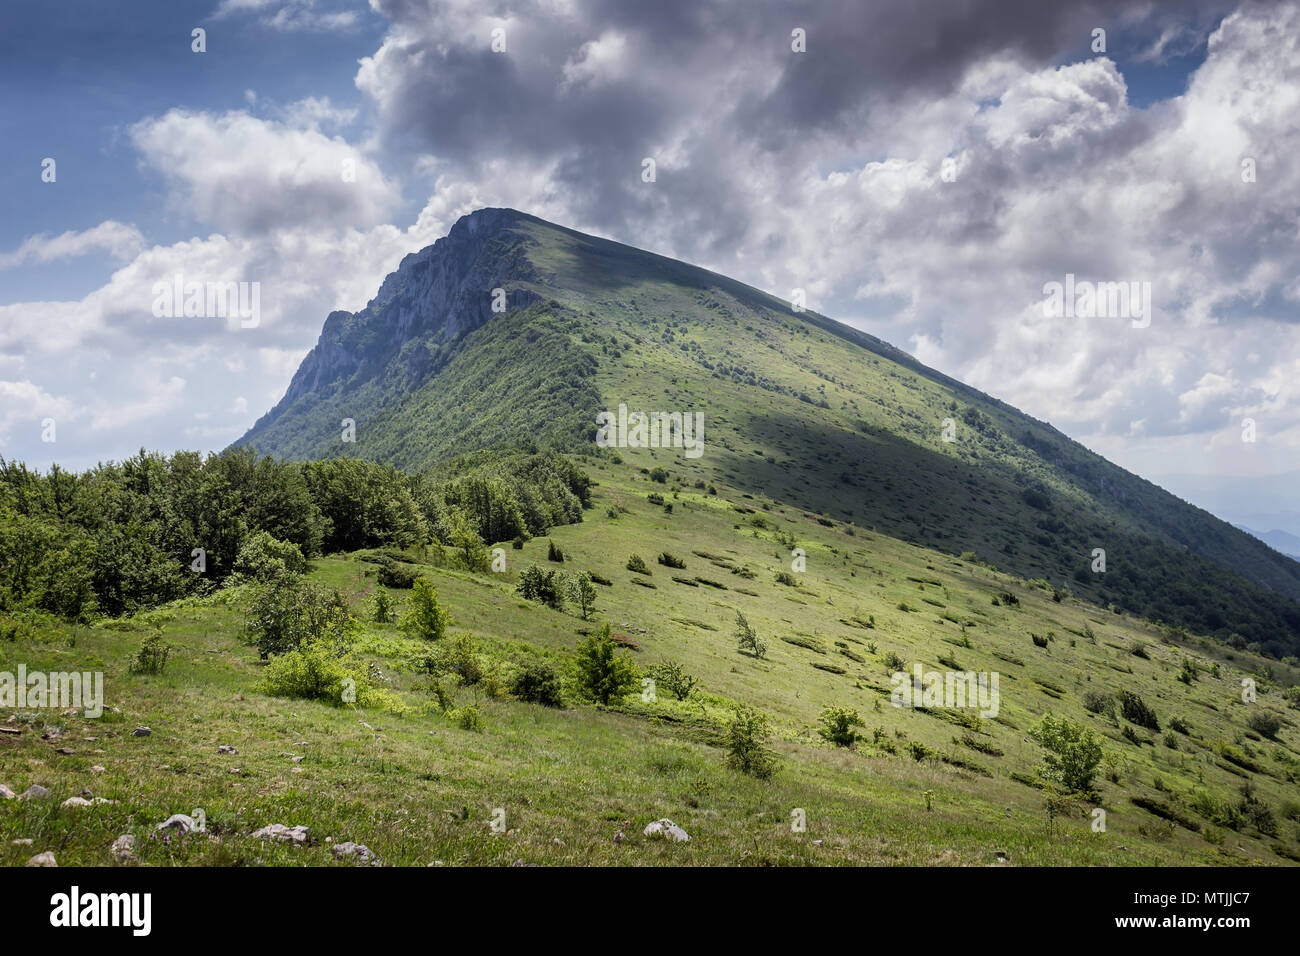 Storm is coming over Trem summit with dramatic clouds dropping shadow on the highlands of Dry mountain in Serbia - Stock Image